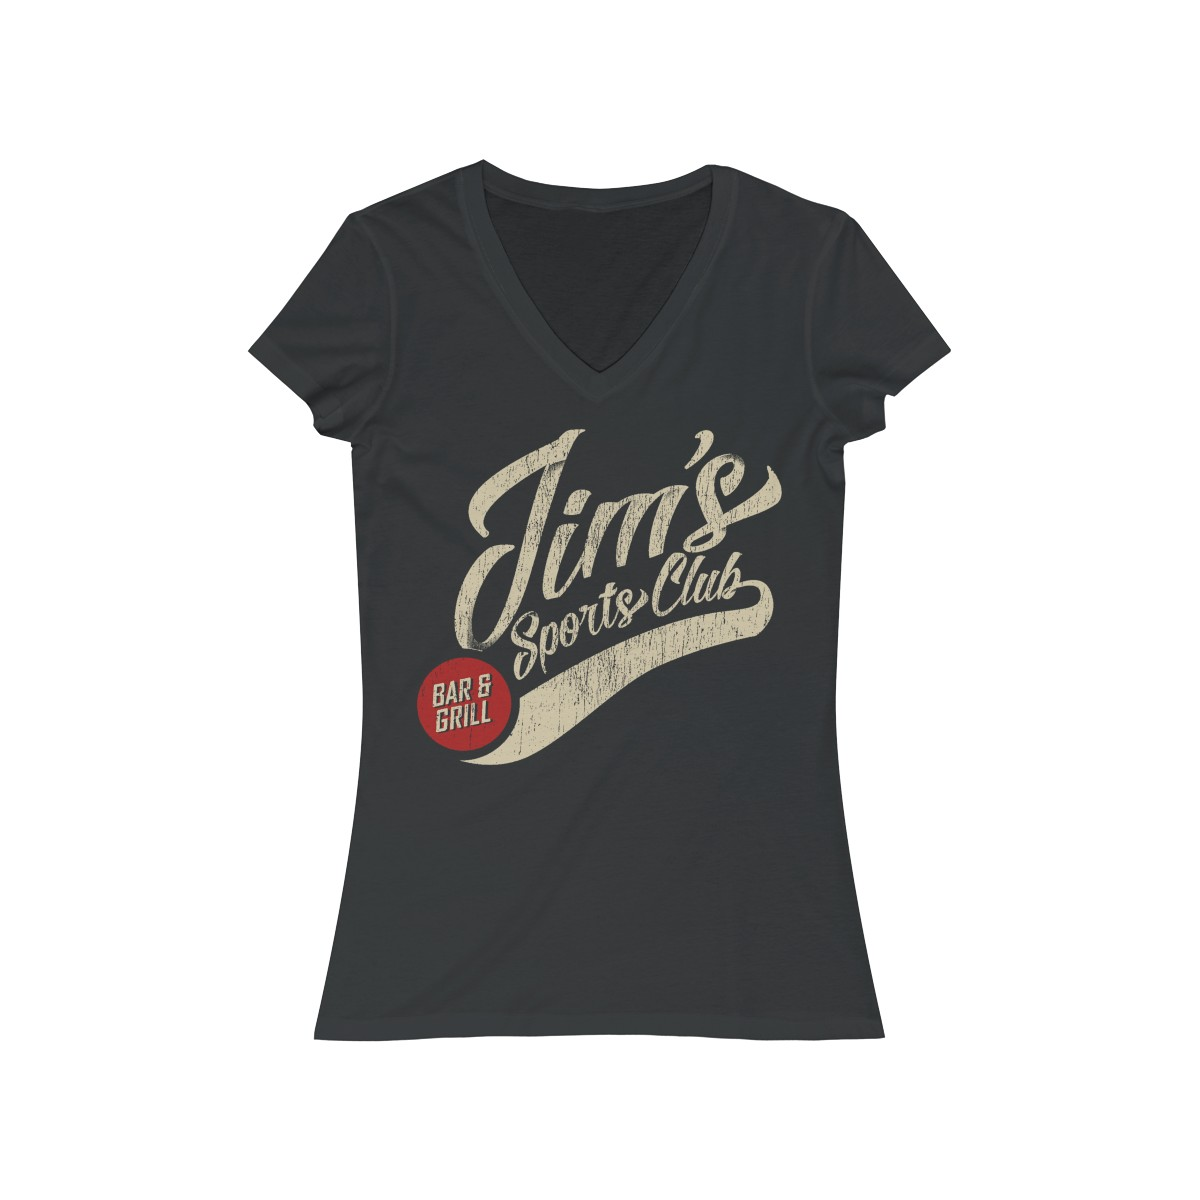 Dark Grey Heather Women's Jersey Short Sleeve V-Neck Tee